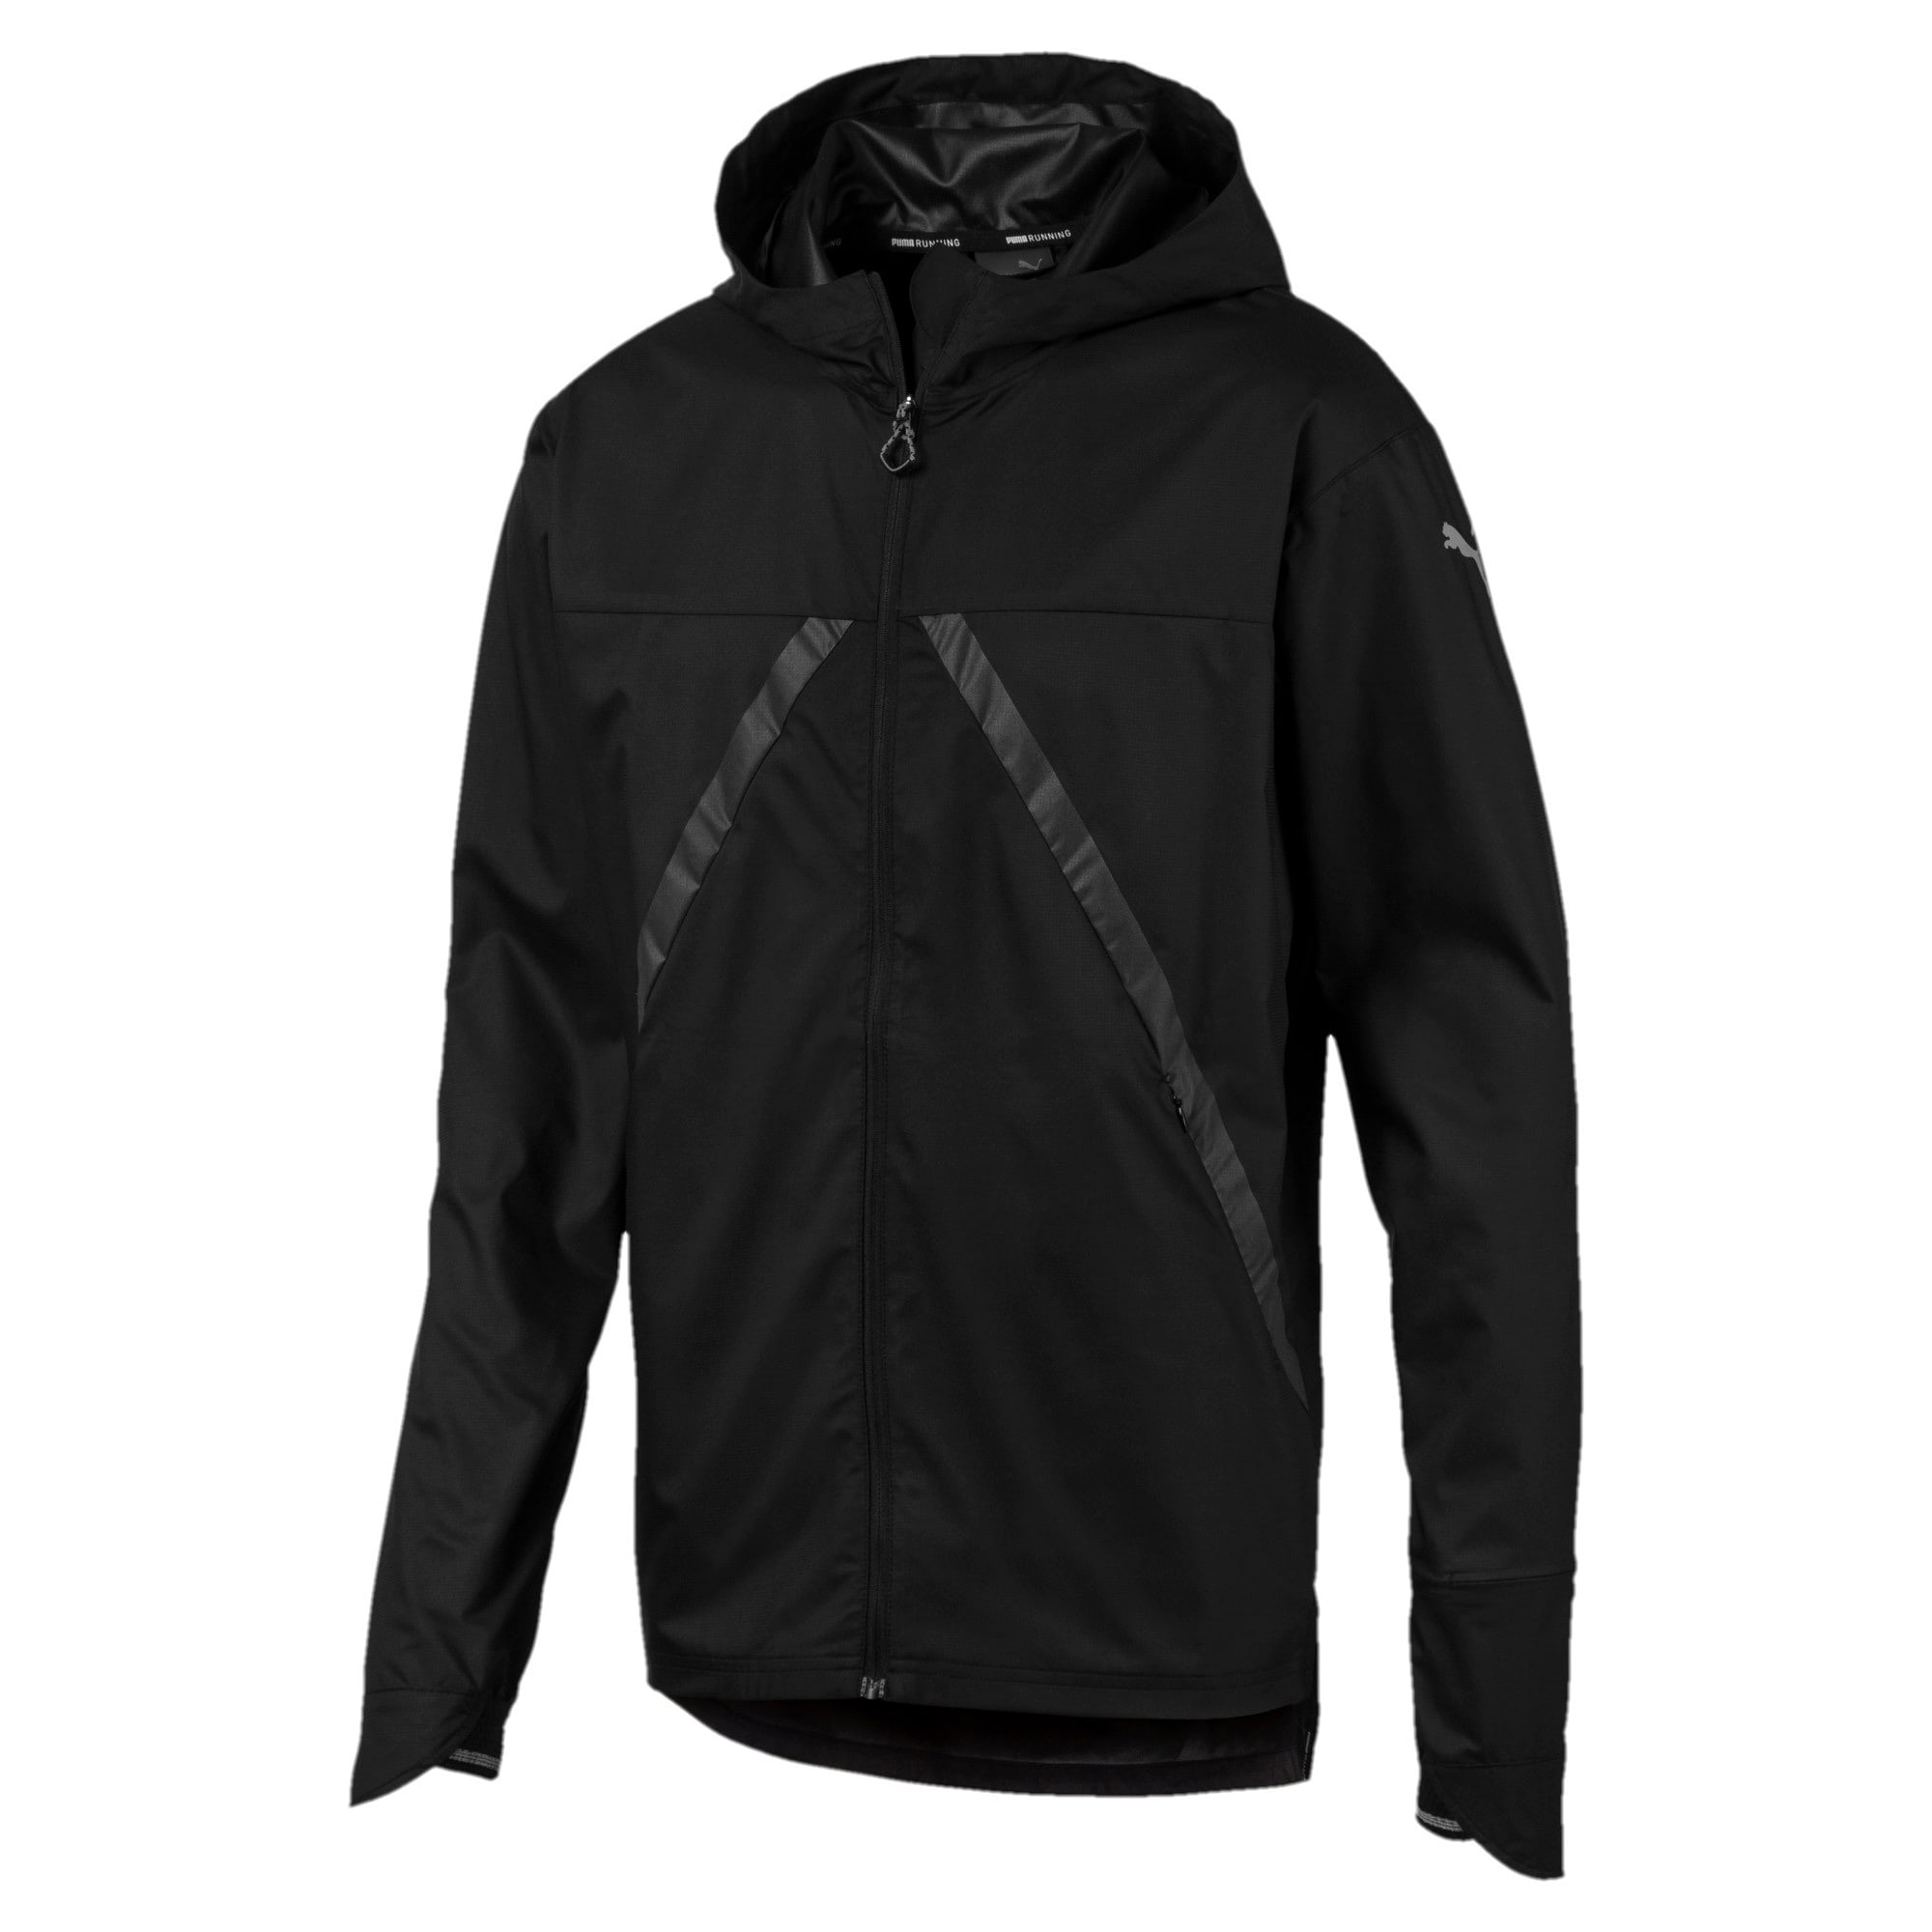 Thumbnail 4 of Last Lap VIZ Men's Running Jacket, Puma Black, medium